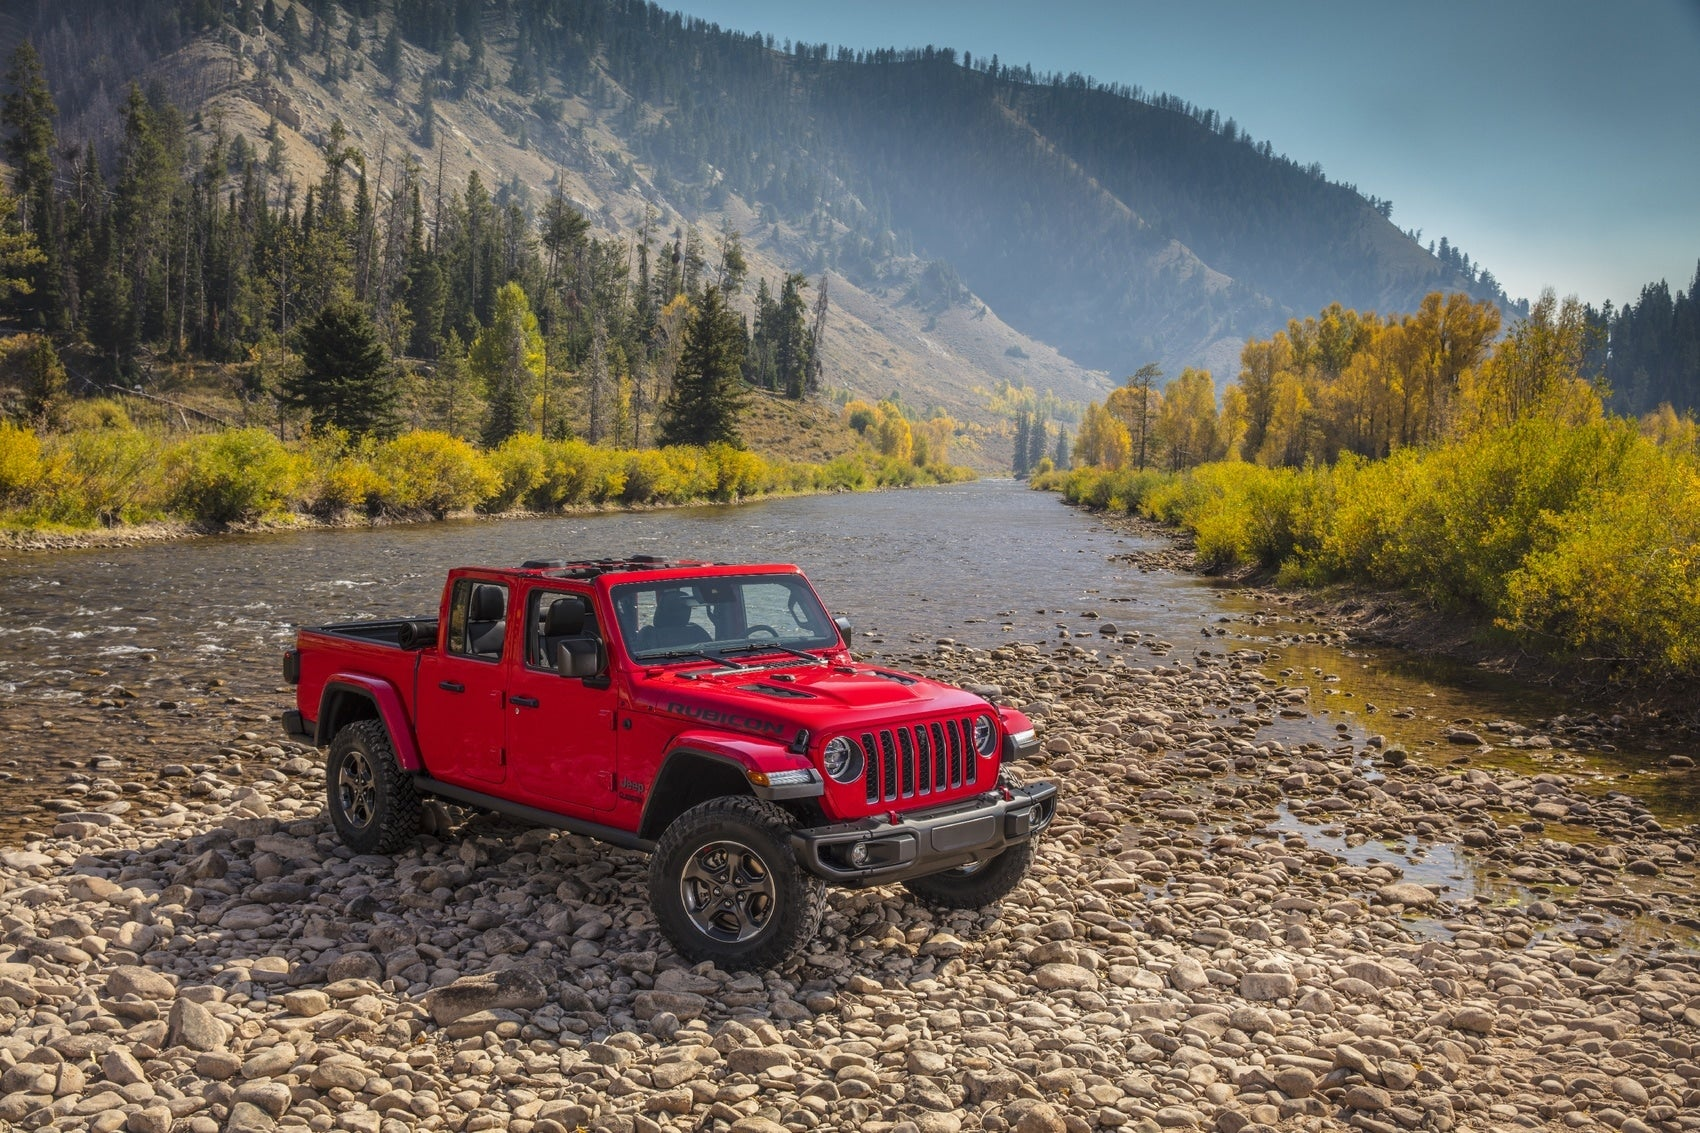 2020 Jeep Gladiator: The Warrior Emerges